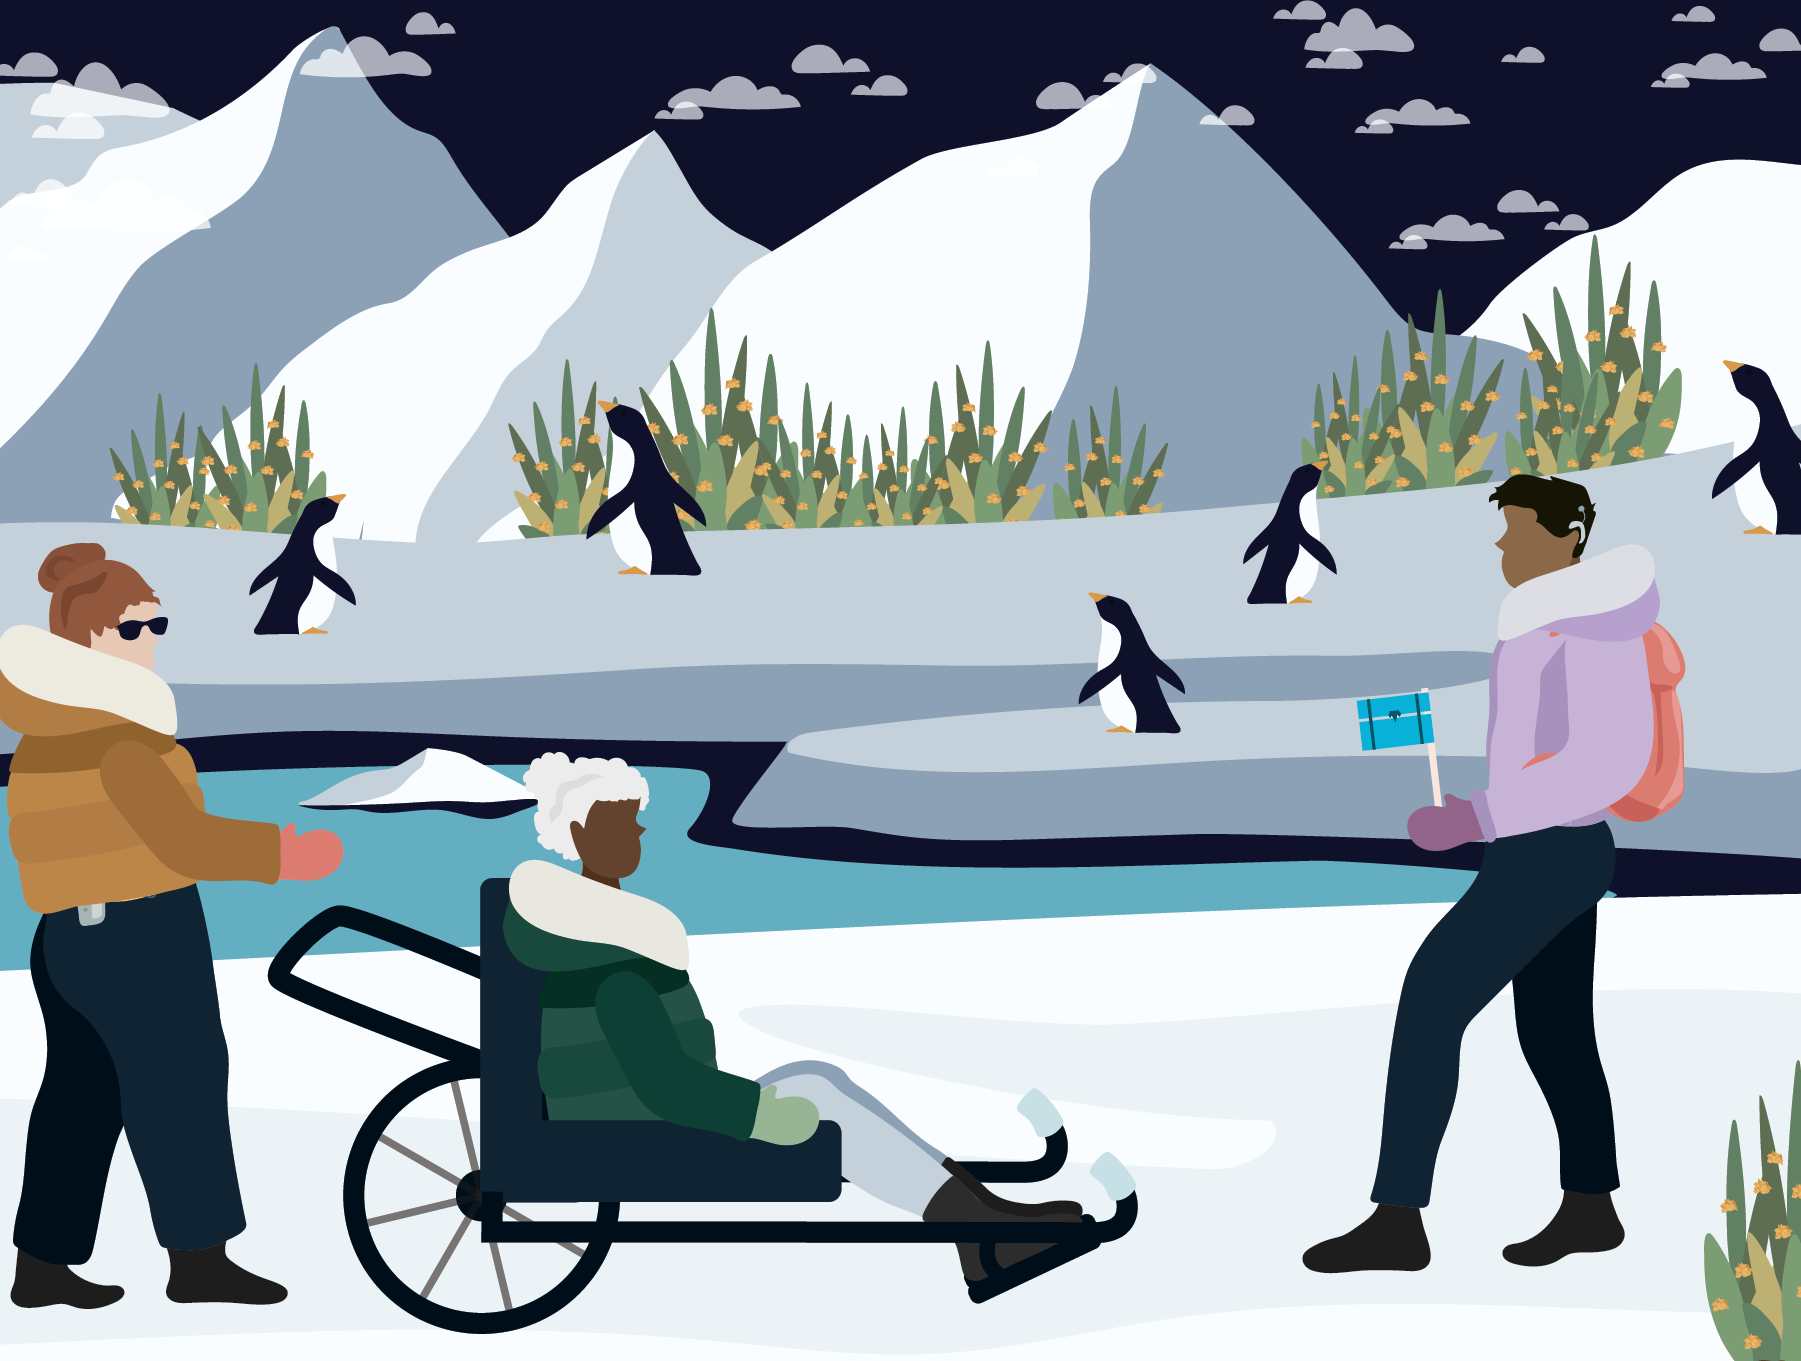 Woman with insulin pump, woman in all-terrain wheelchair, and a man on the ice with penguins and mountains in the background. Illustration.